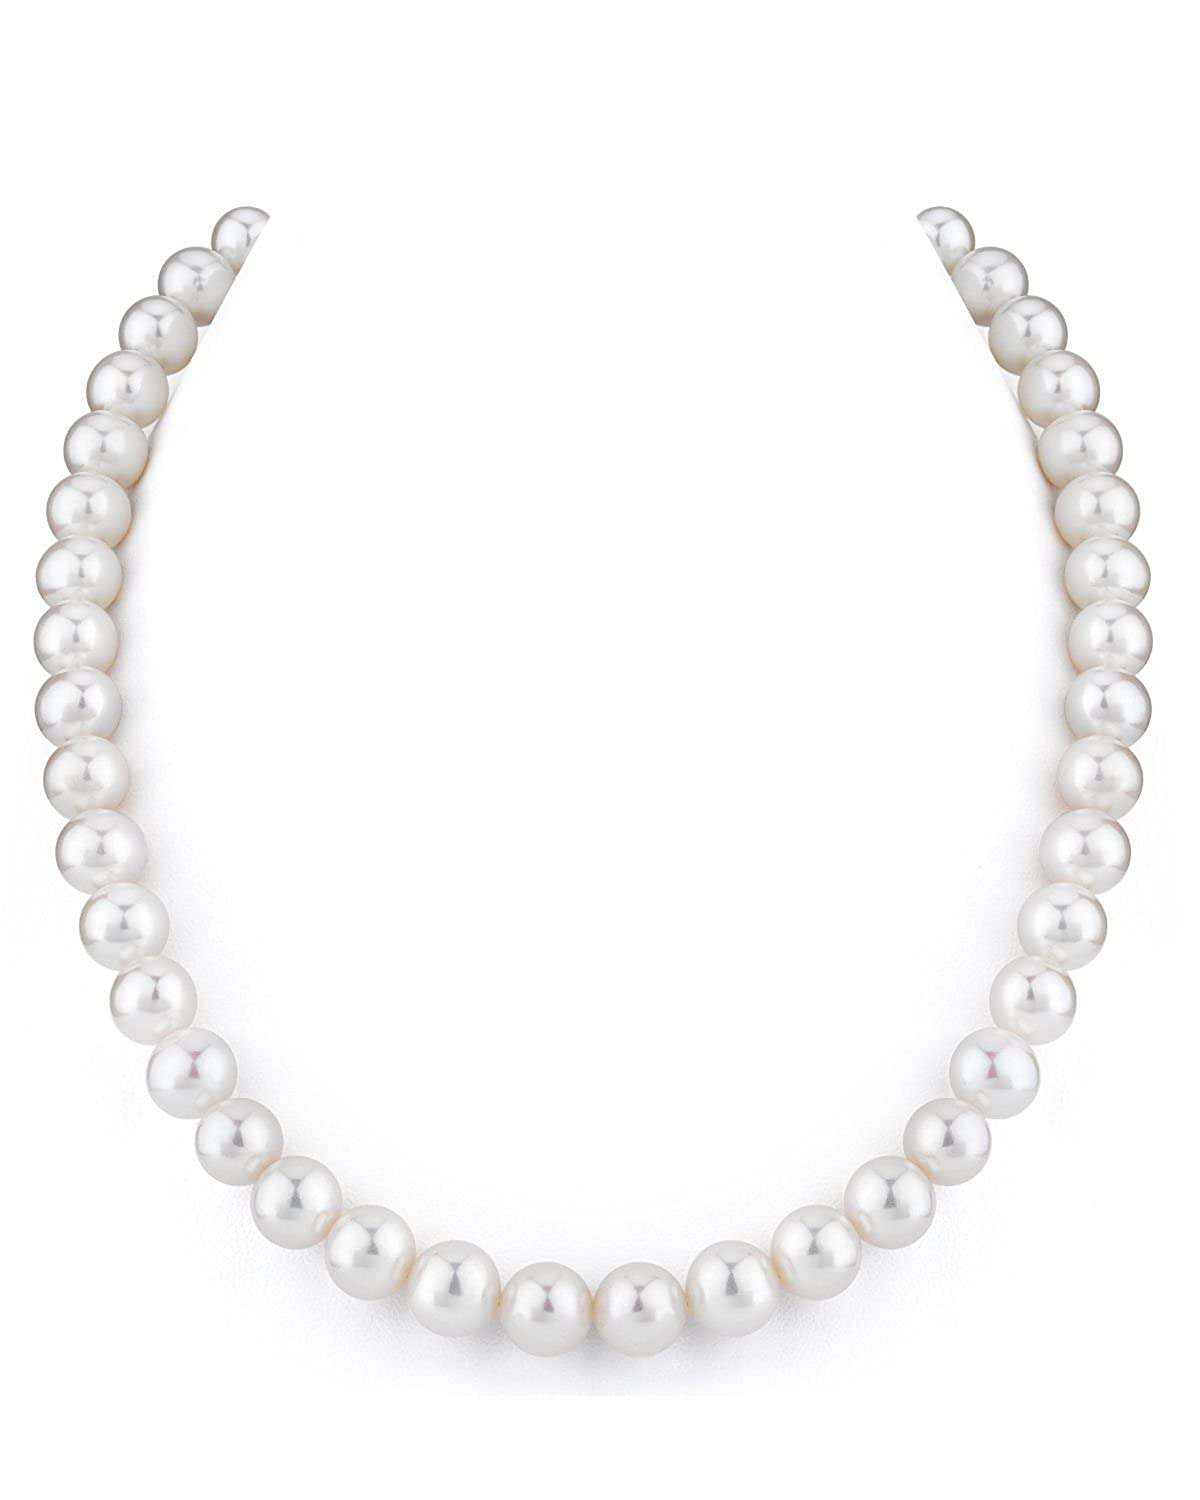 THE PEARL SOURCE 14K Gold 9-10mm AAA Quality White Freshwater Cultured Pearl Necklace for Women in 18 Princess Length